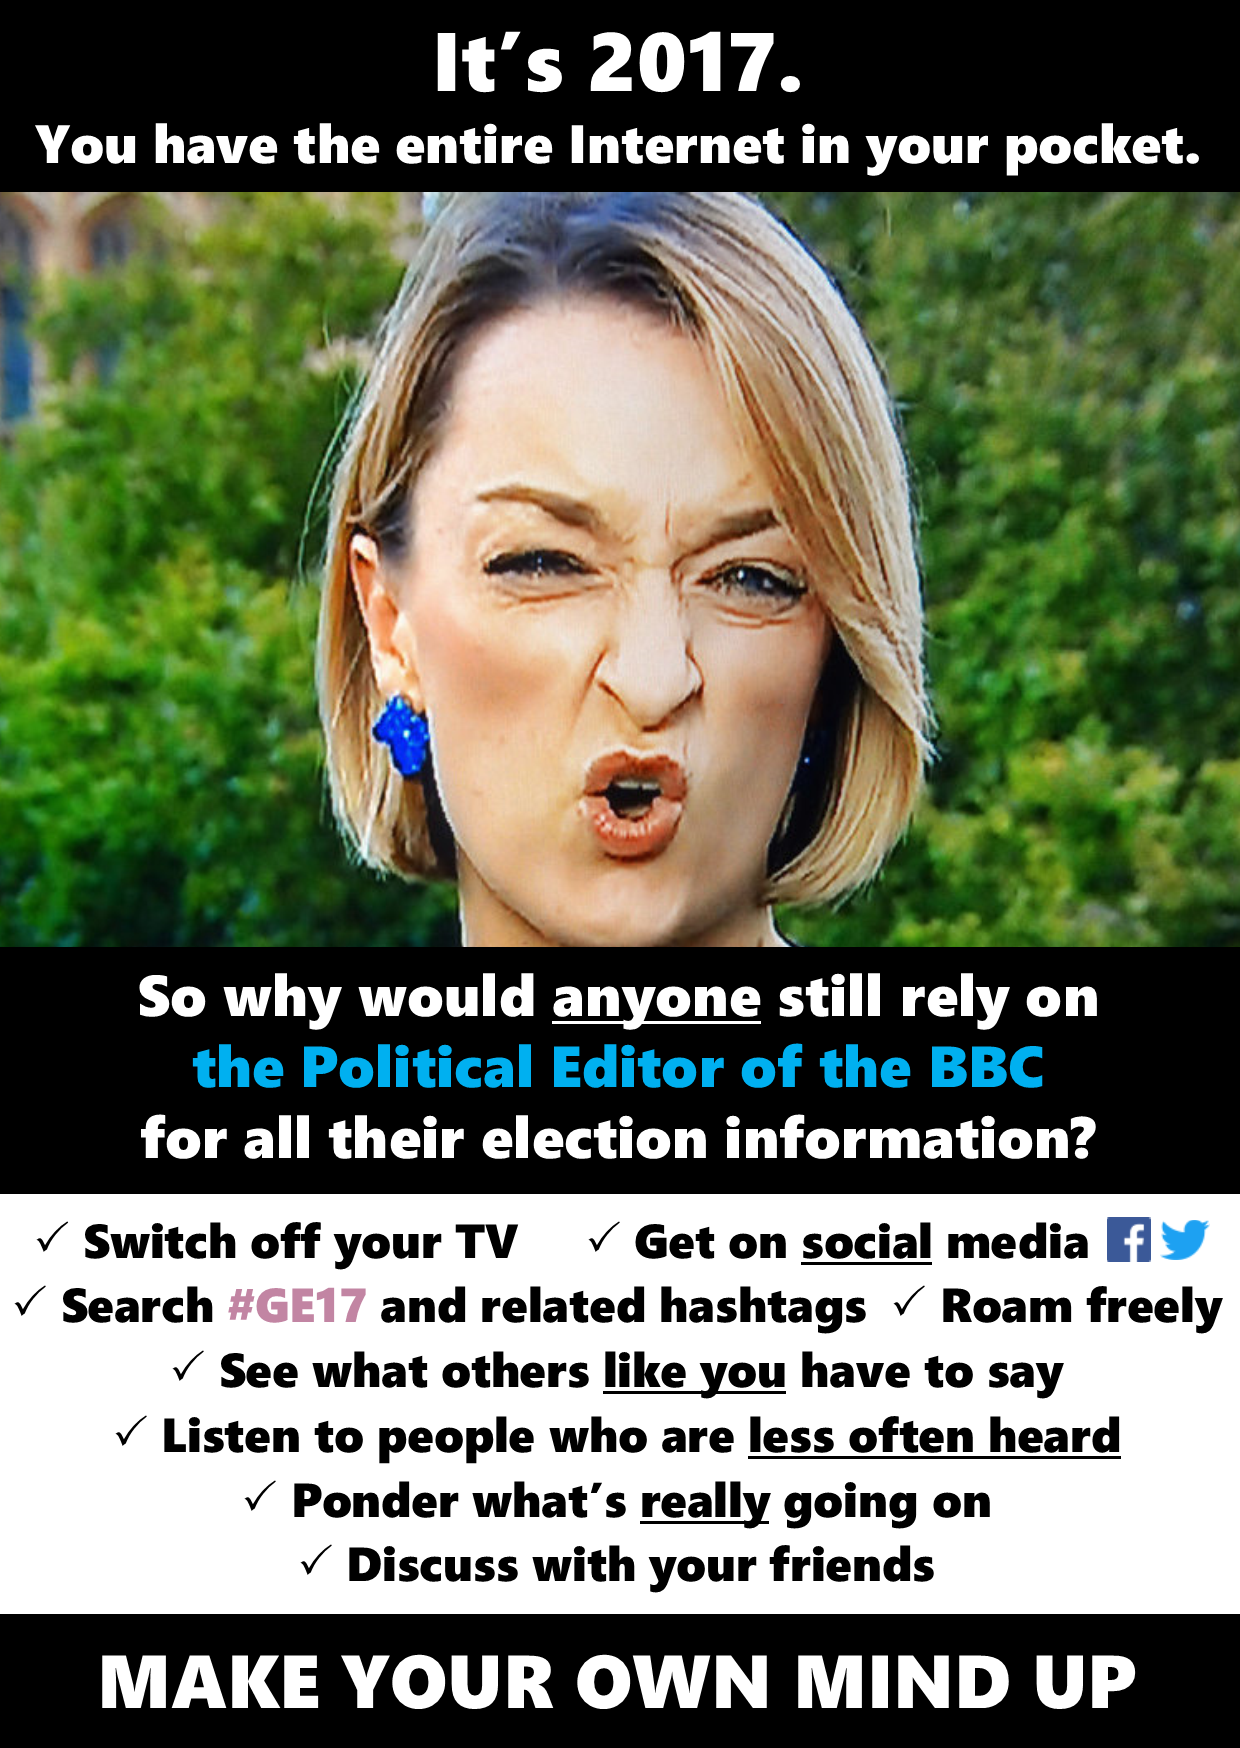 Flyer 7: #BBCbias #MediaBias - #StopTheTories Channel